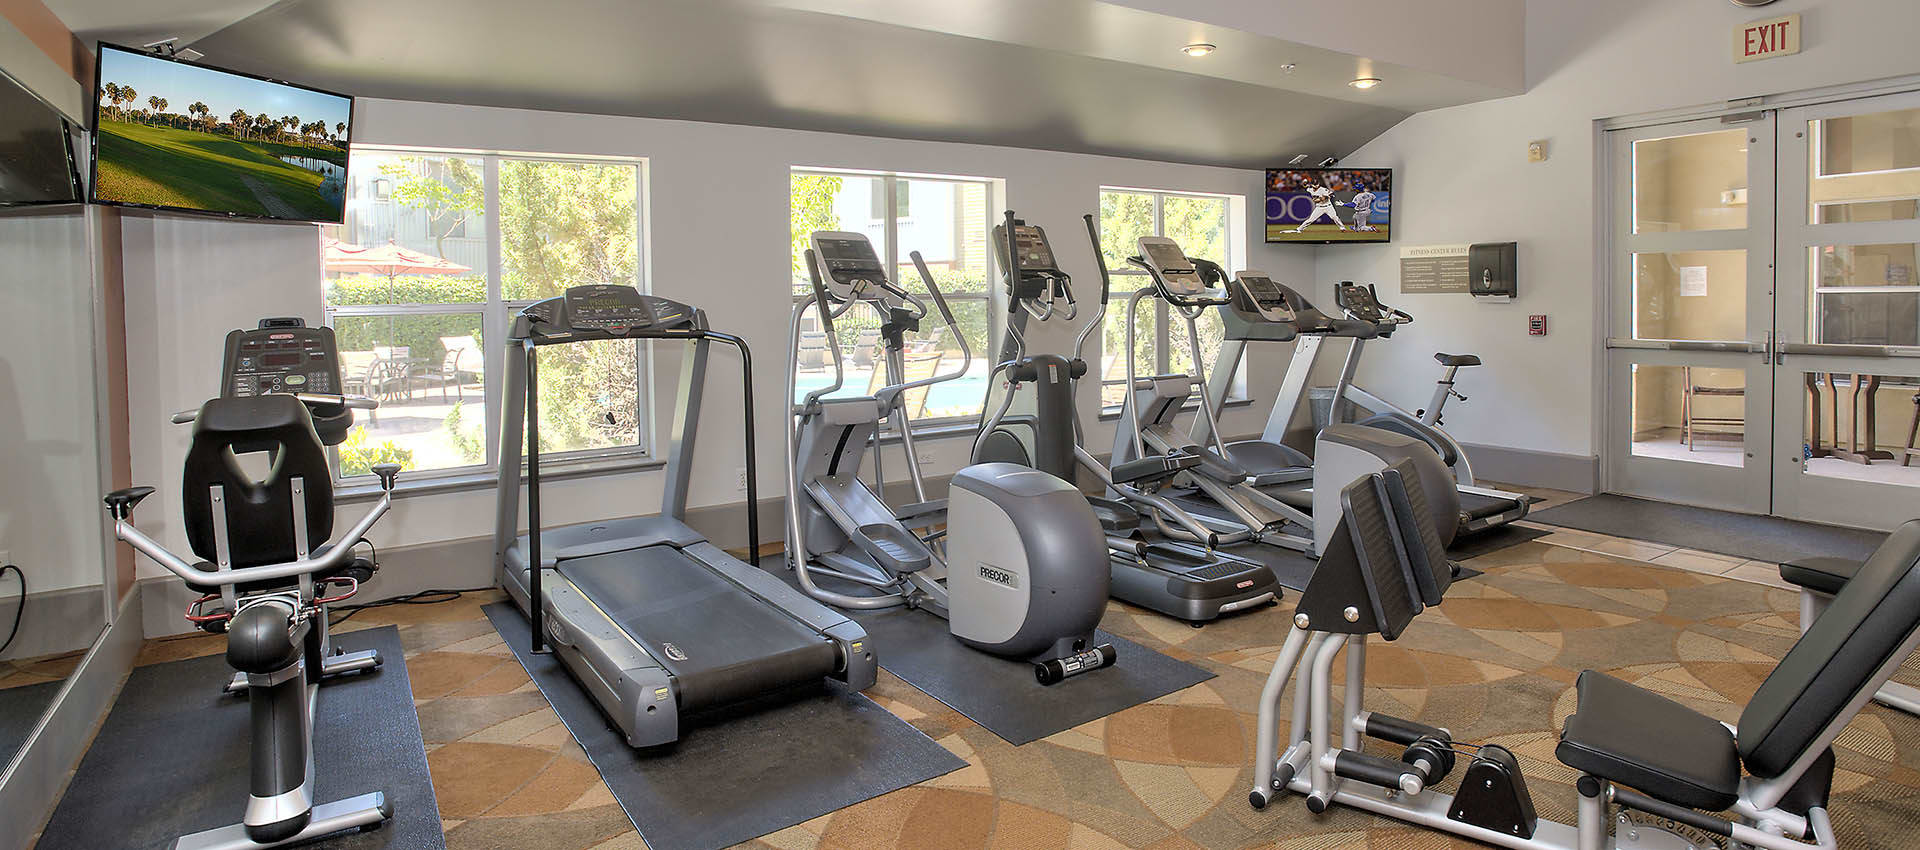 Cardio Equipment In Fitness Center at Azure Apartment Homes in Petaluma, California